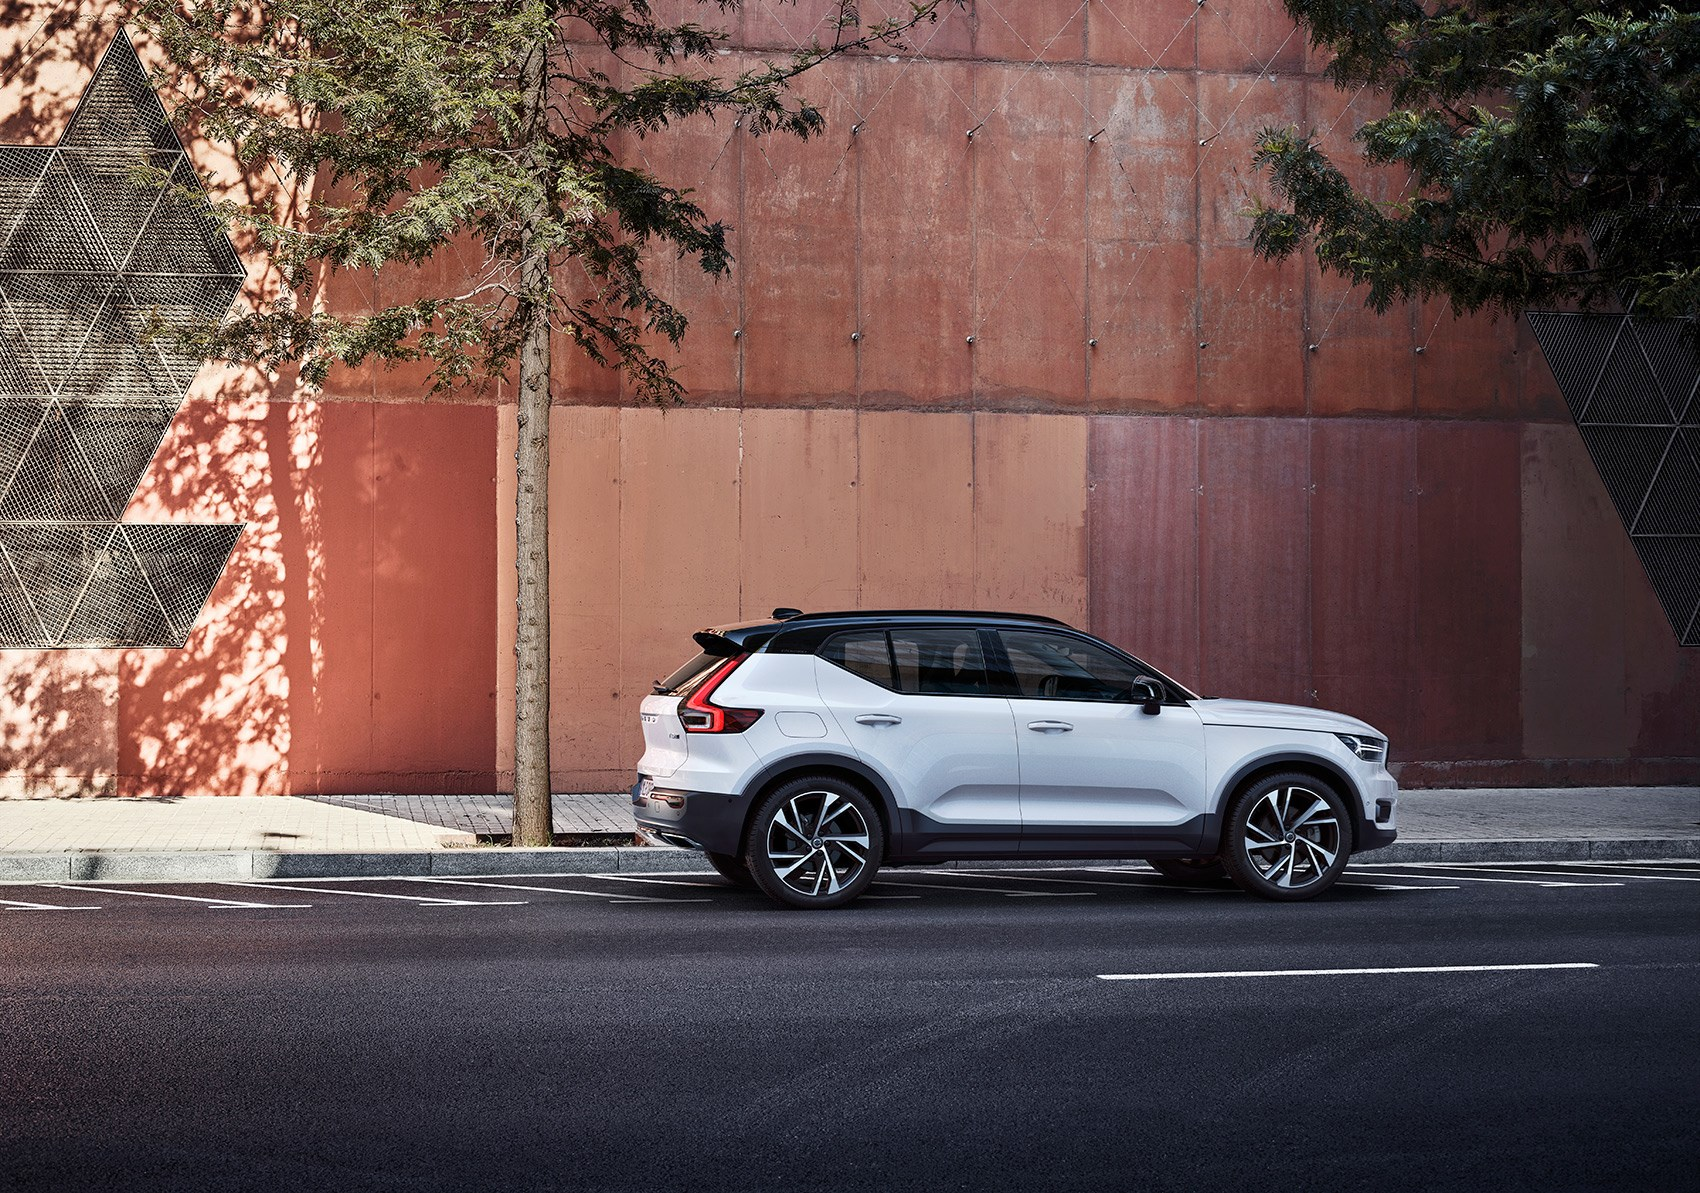 Volvo XC40 dimensions: 4425mm long, 1910mm wide, 1658mm high